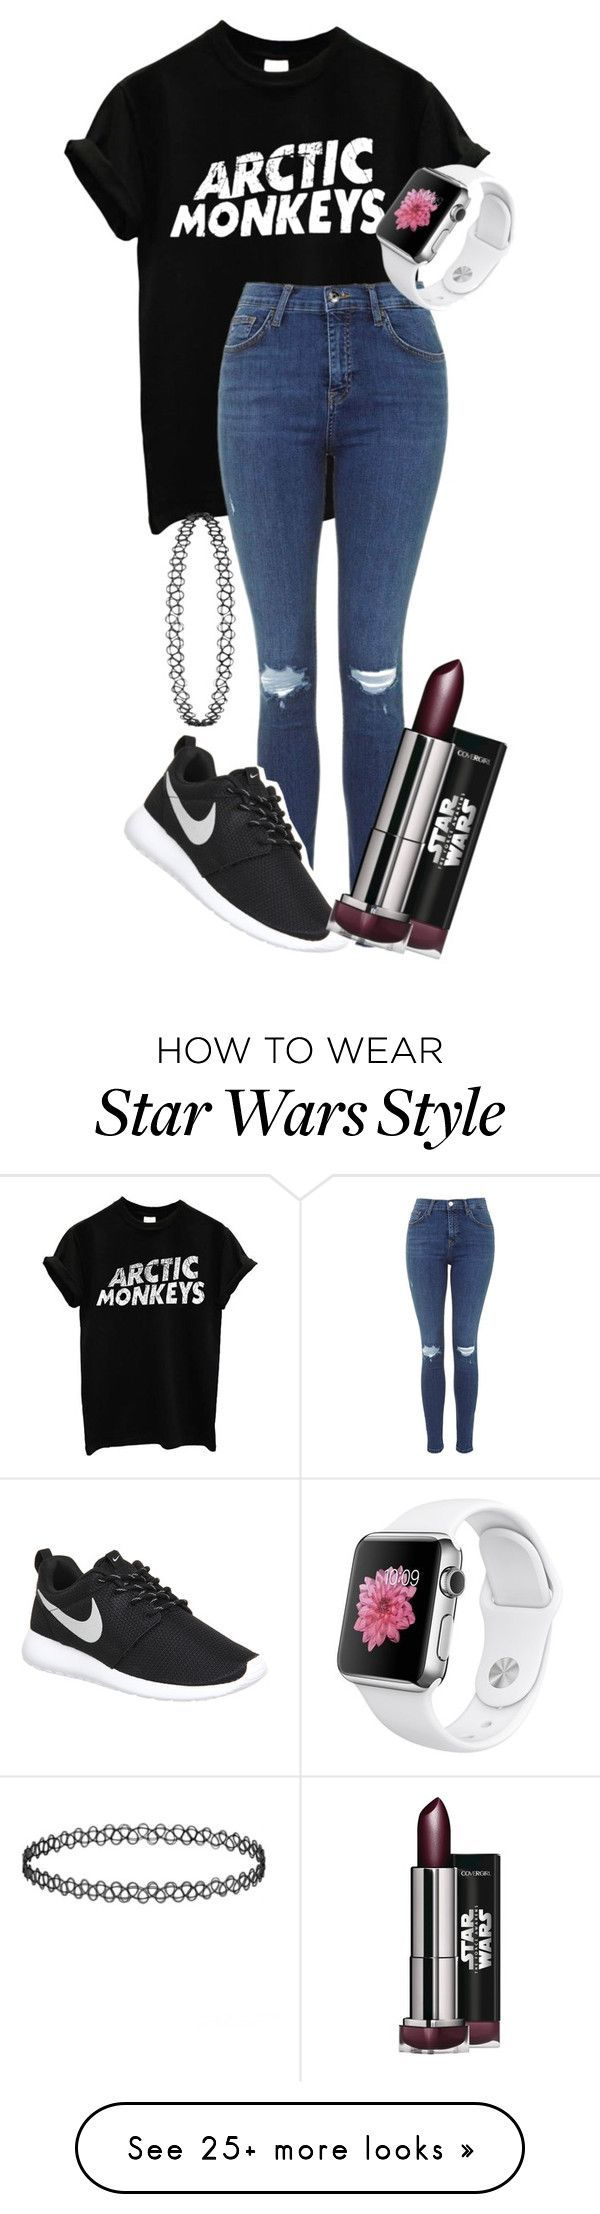 Untitled #246 by tanyawhyler on Polyvore featuring NIKE, women's clothing, women's fashion, women, female, woman, misses and juniors